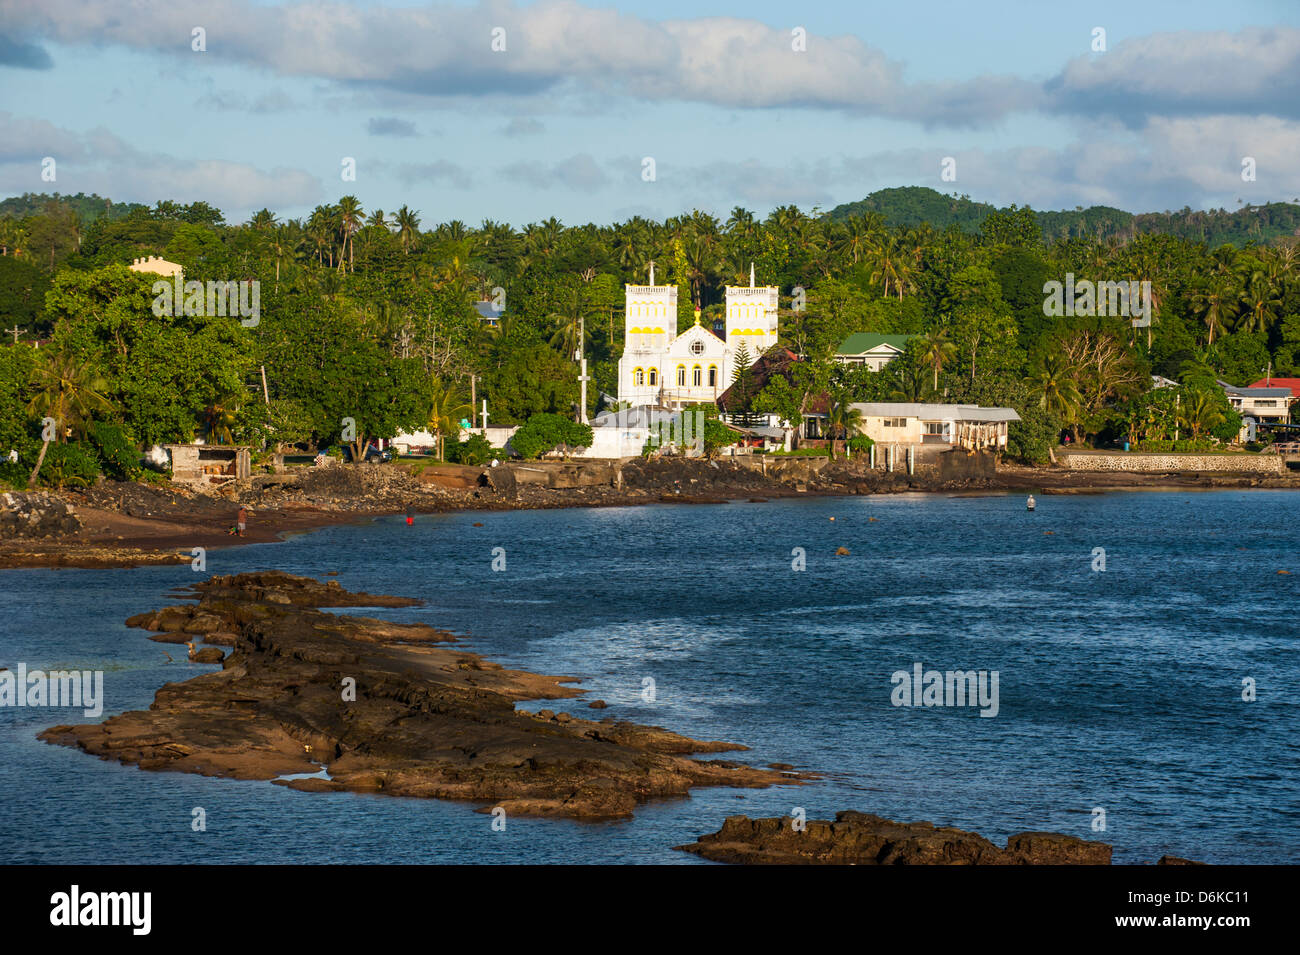 Church in the tropical surroundings, Tutuila Island, American Samoa, South Pacific, Pacific - Stock Image